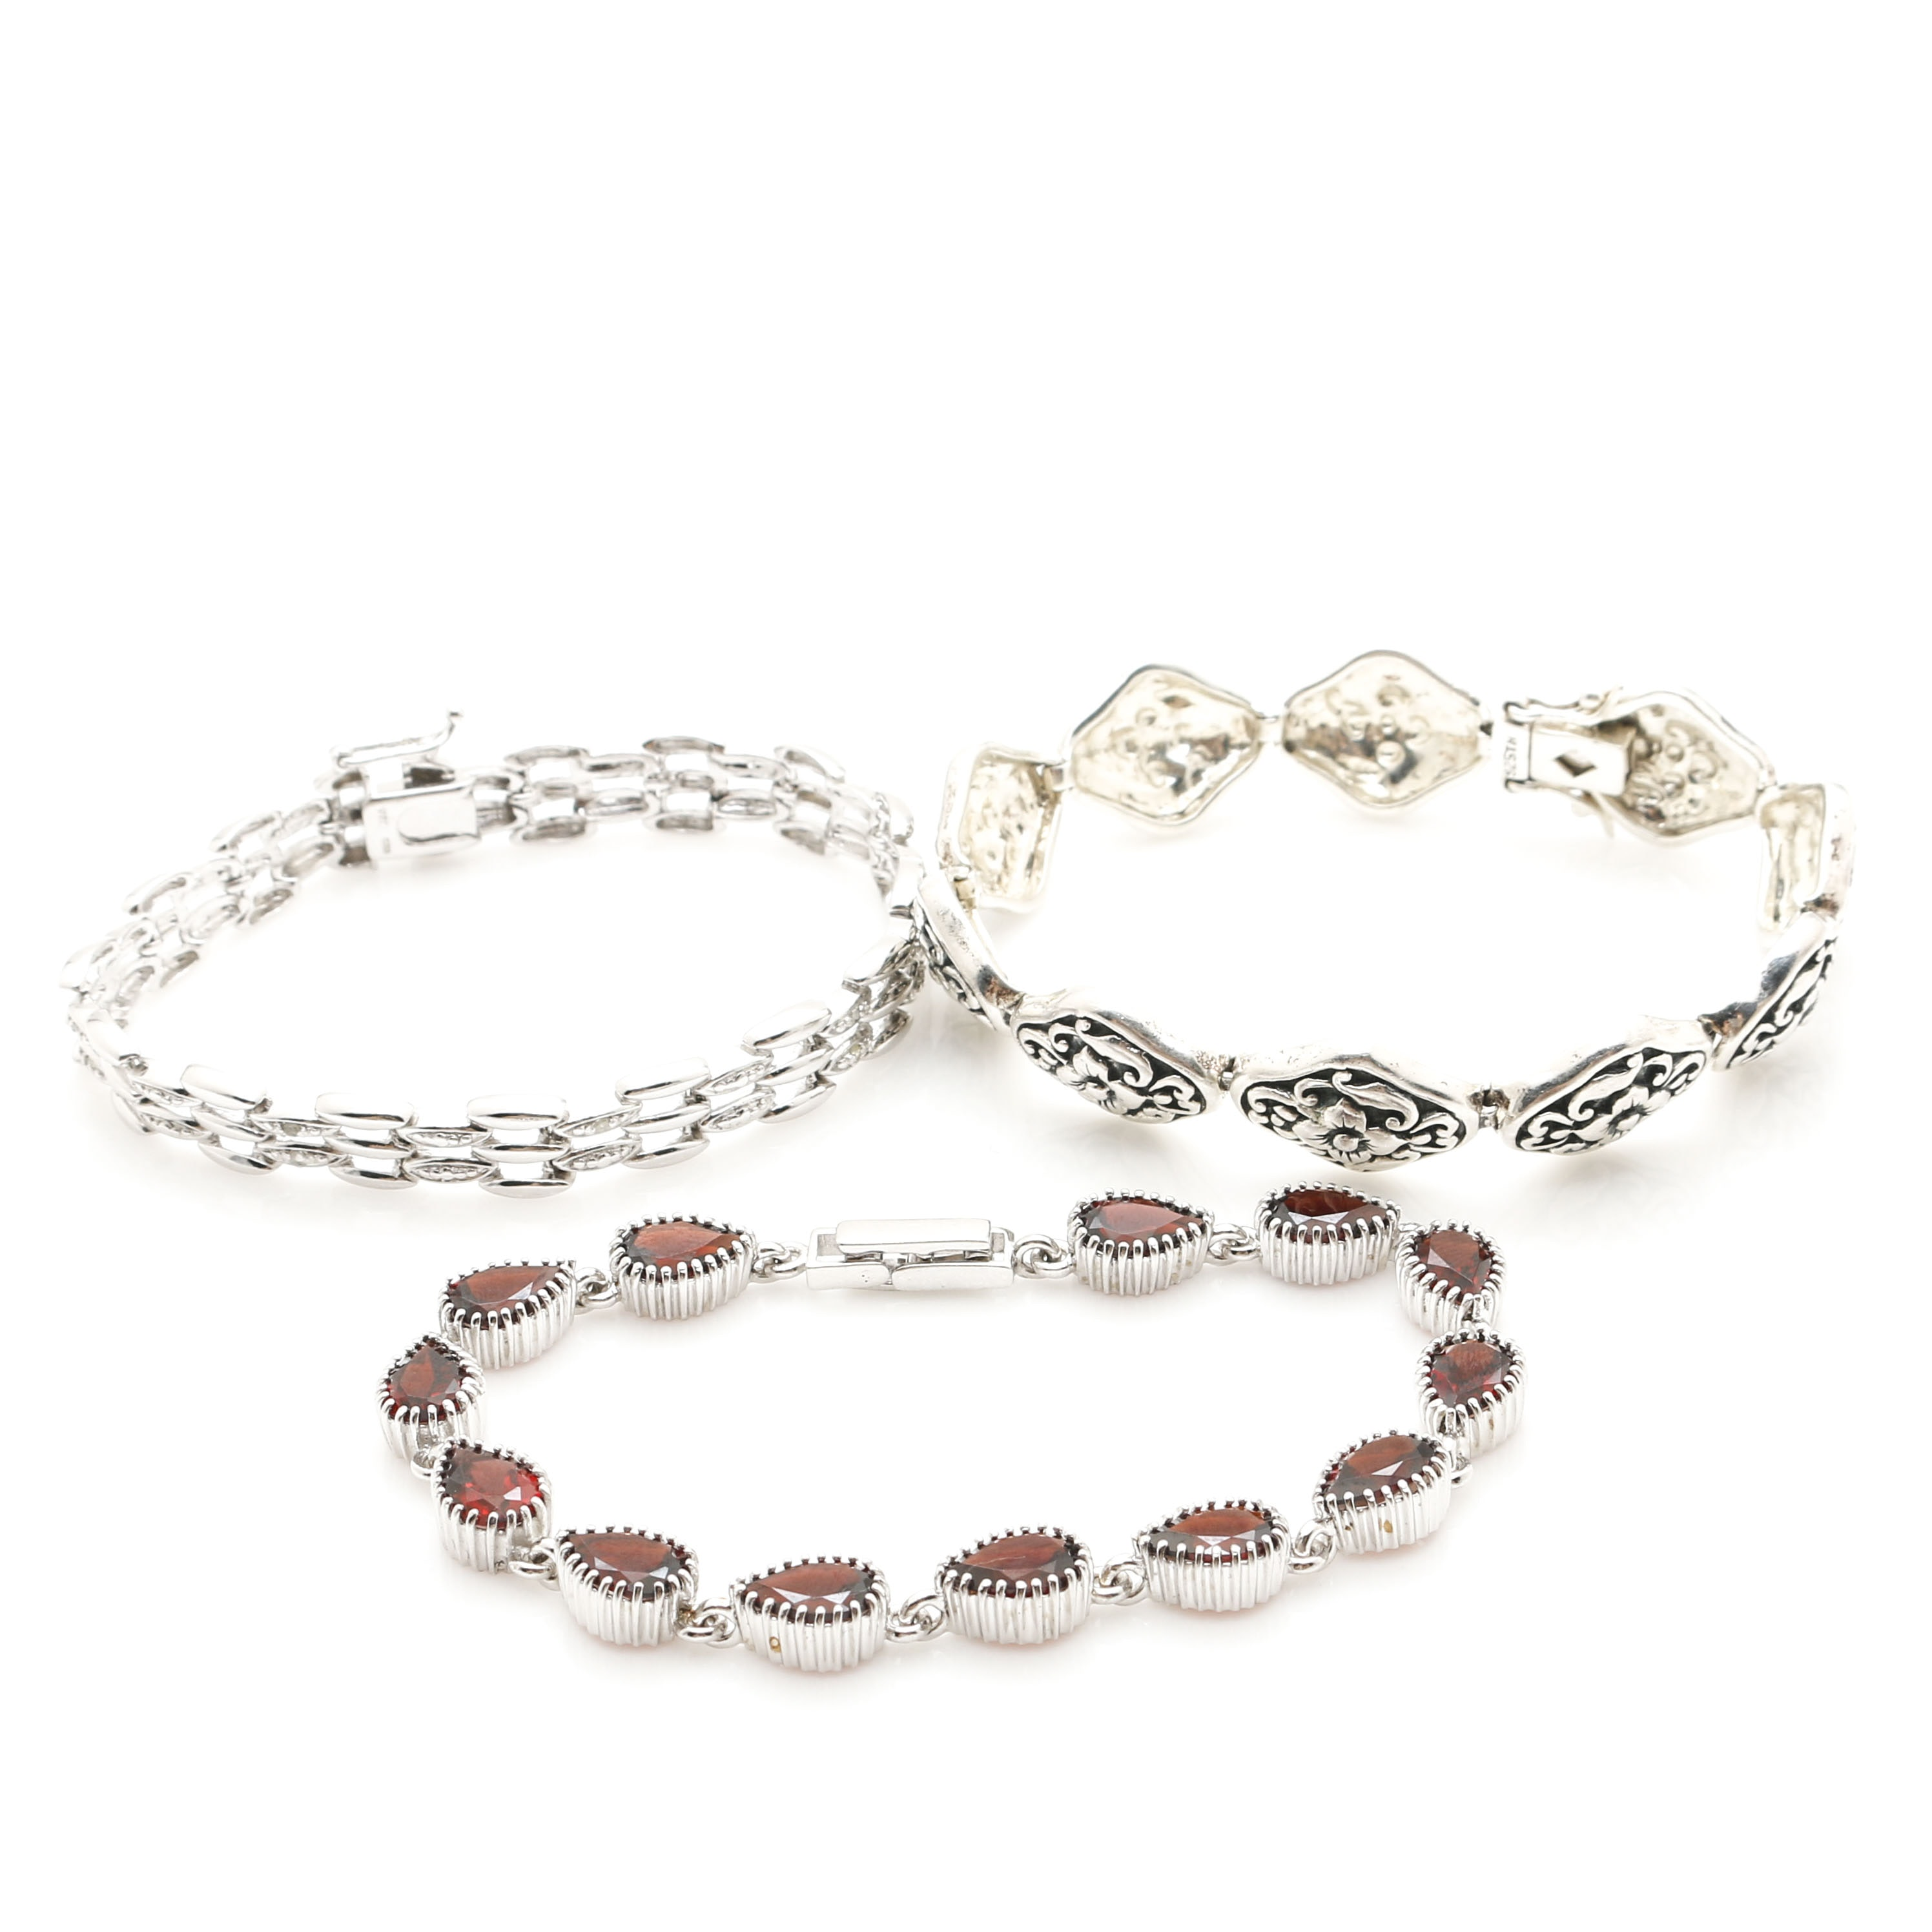 Sterling Silver Bracelets With Garnets and Diamonds